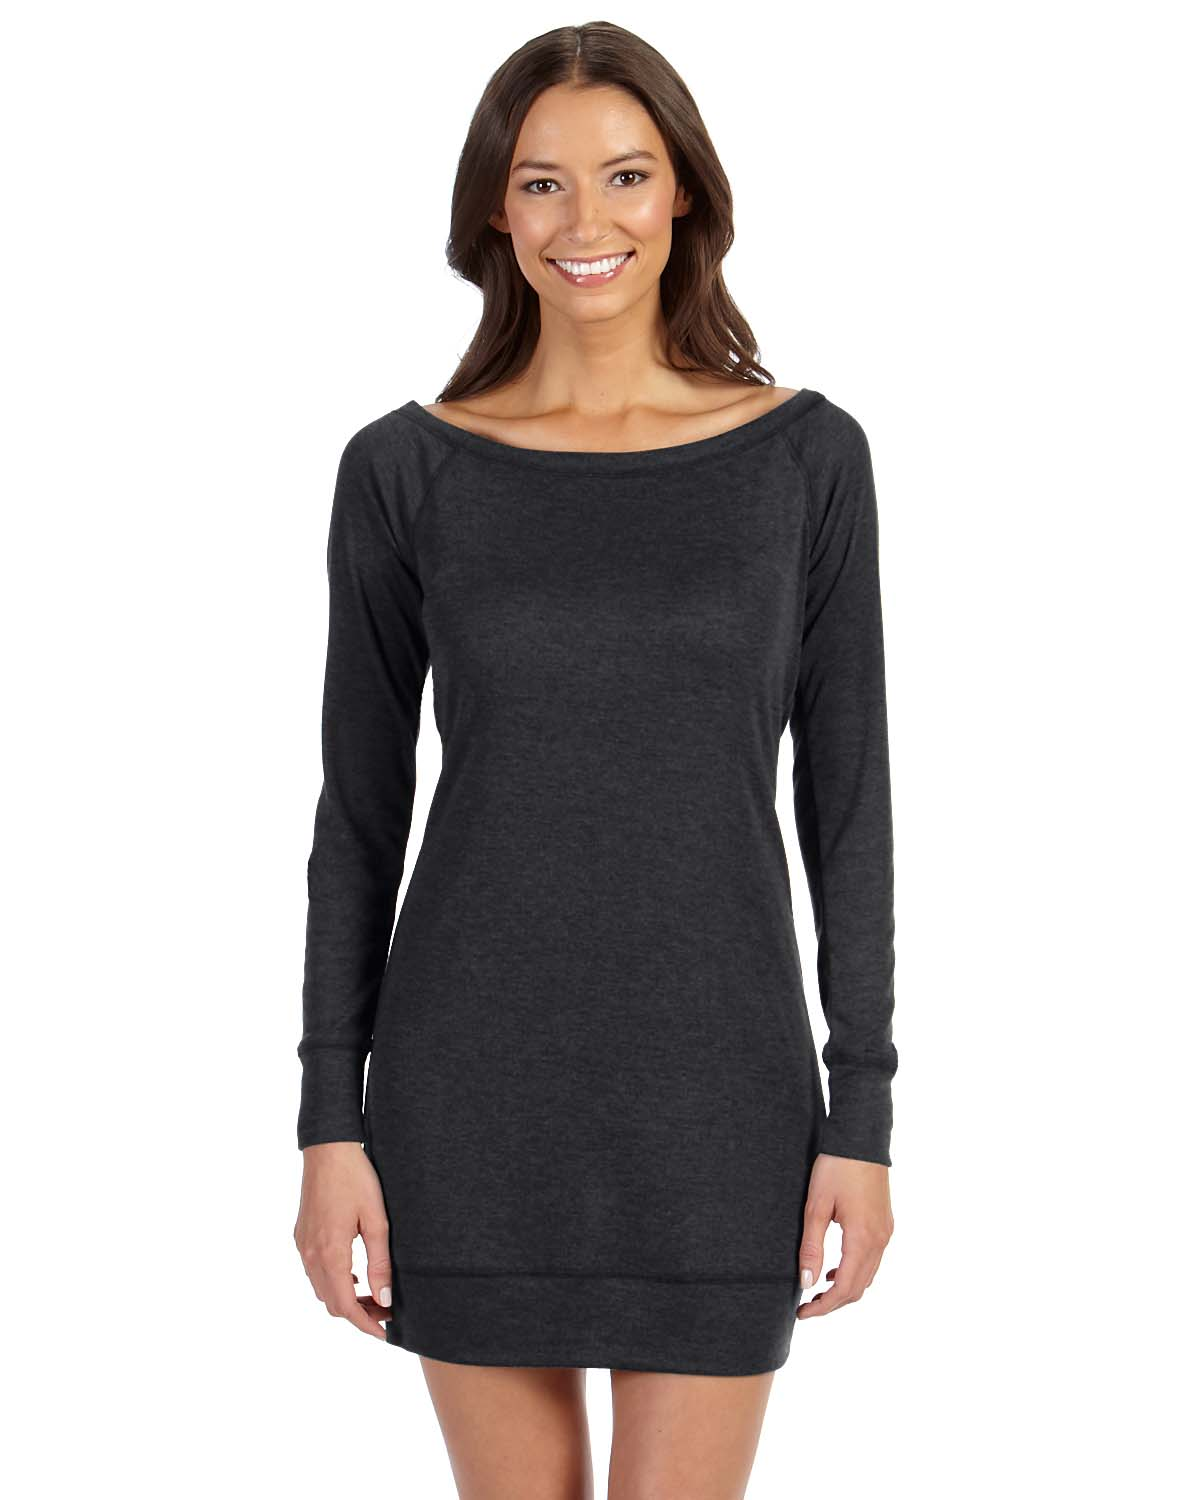 Bella Ladies Lightweight Sweater Dress